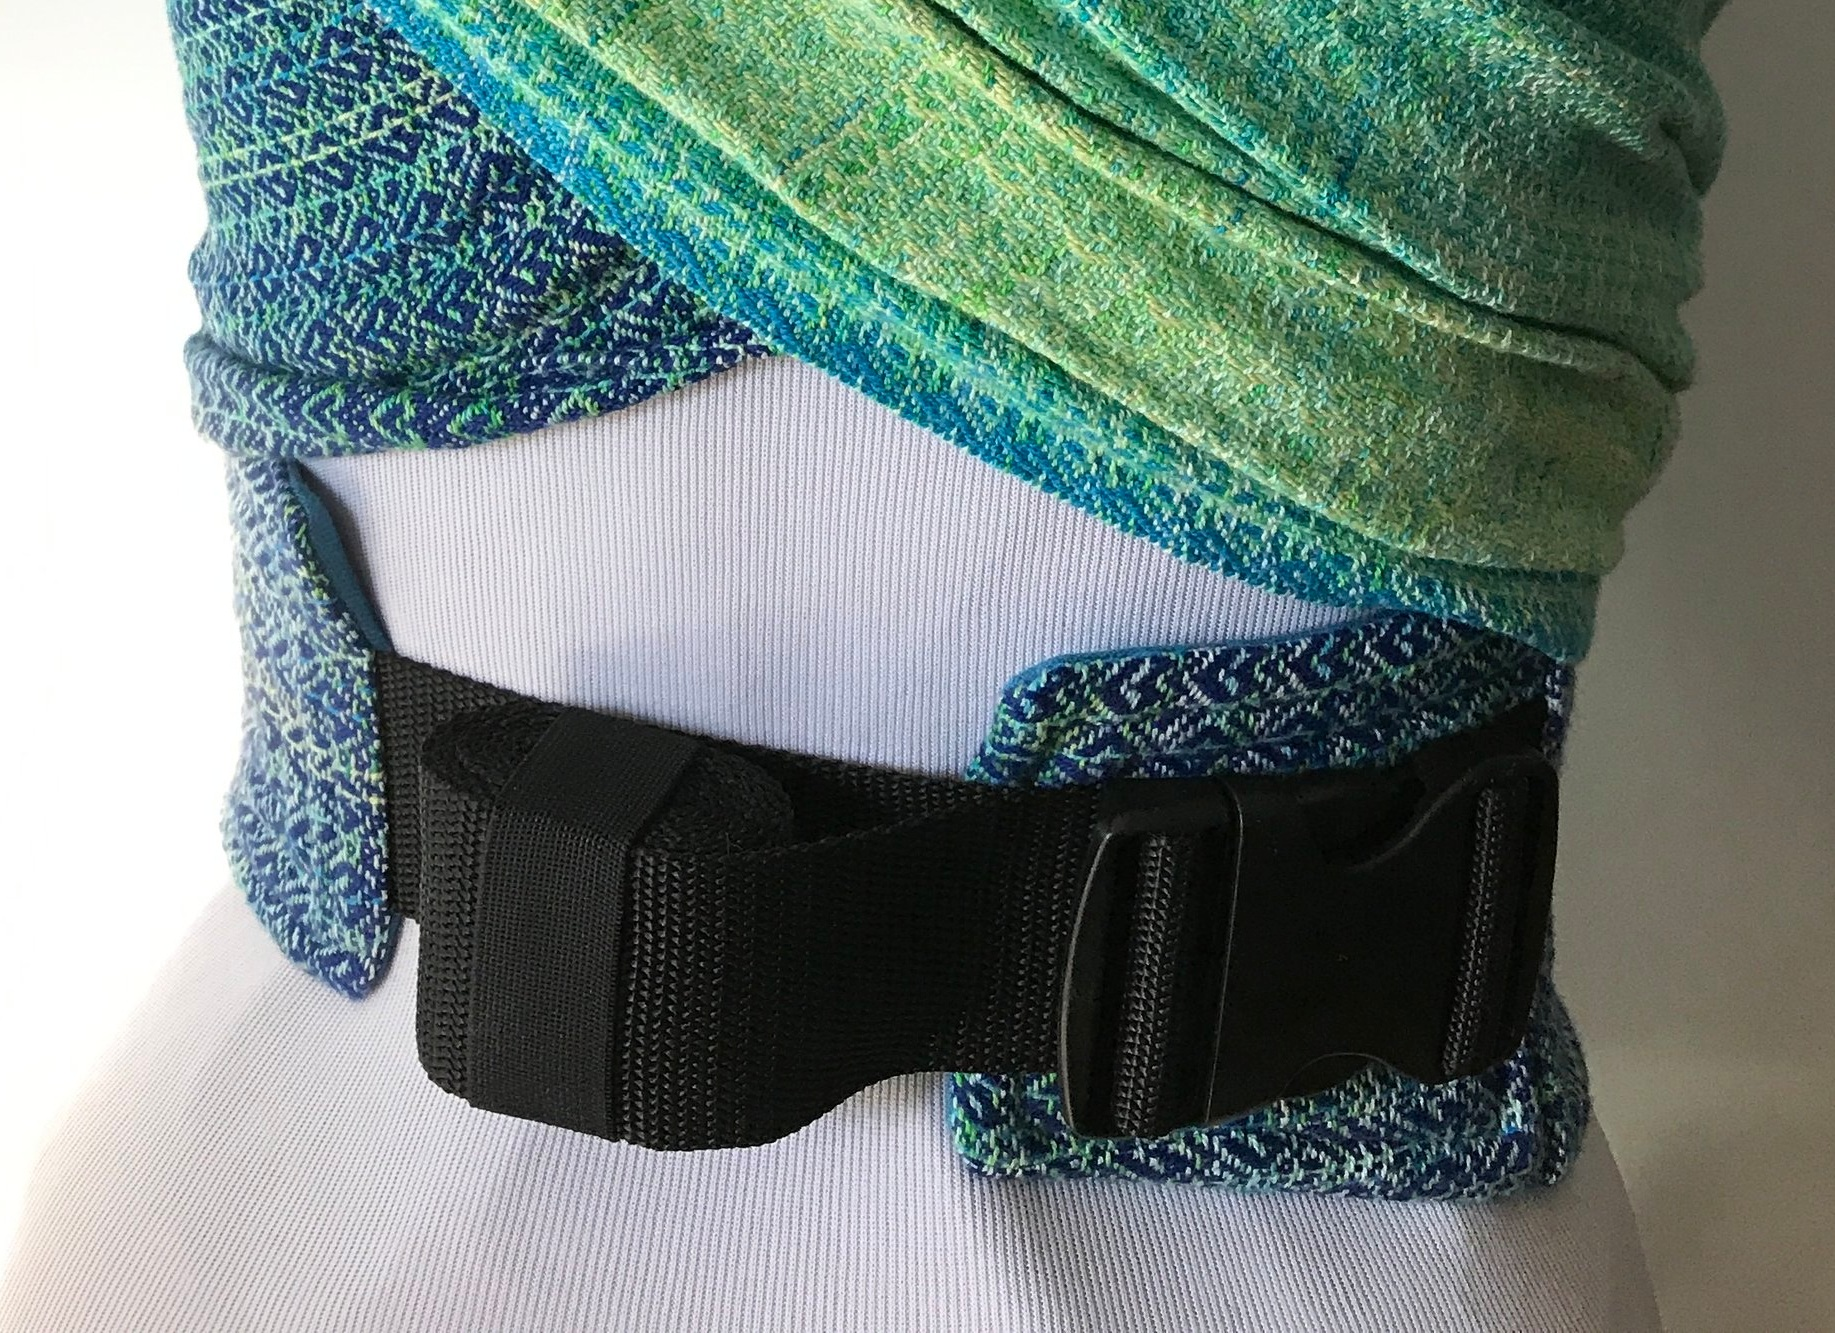 Buckle Waistband (Available as single or dual adjust (single is pictured here)